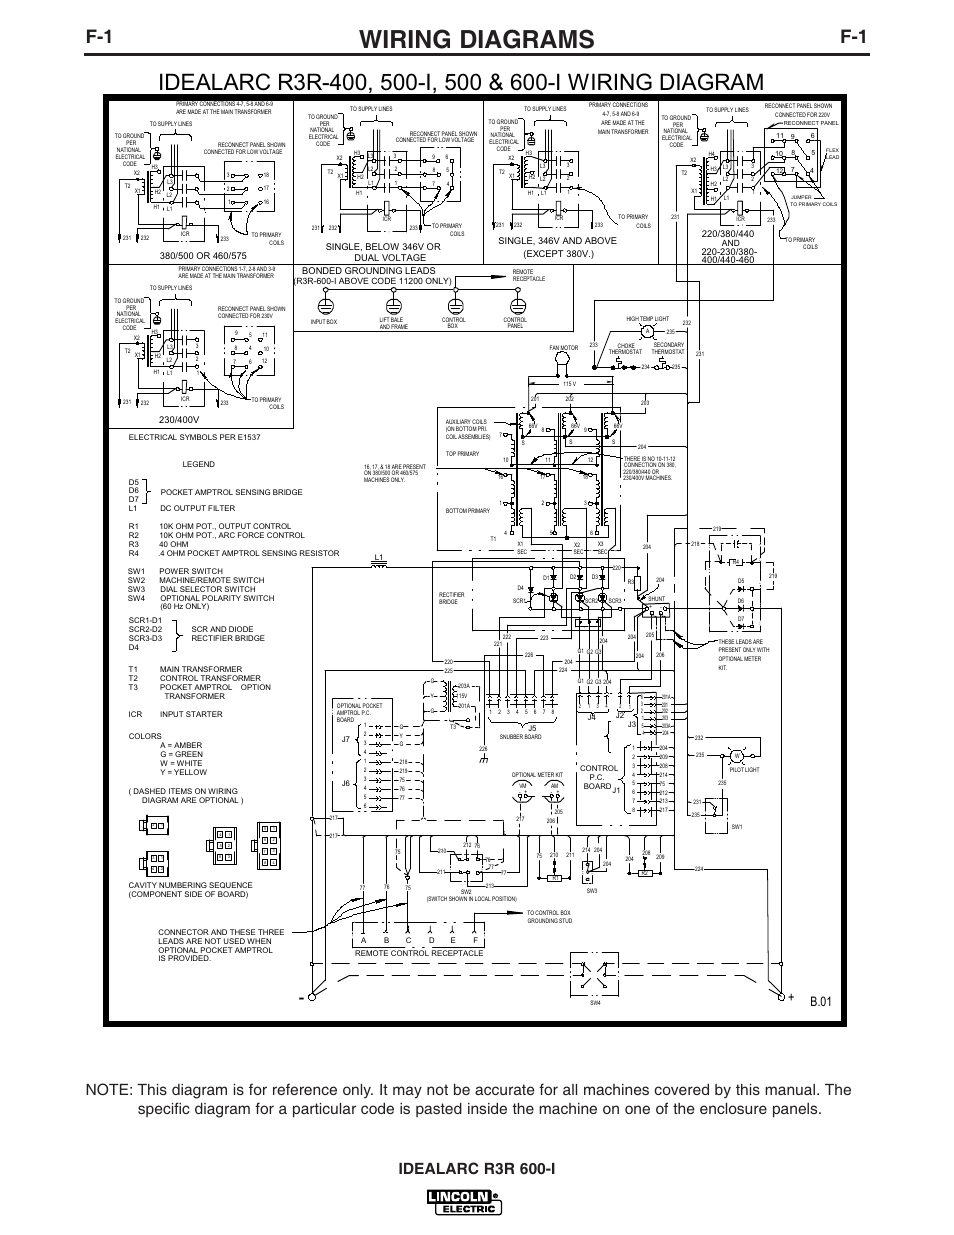 lincoln dc 600 wiring diagram   29 wiring diagram images